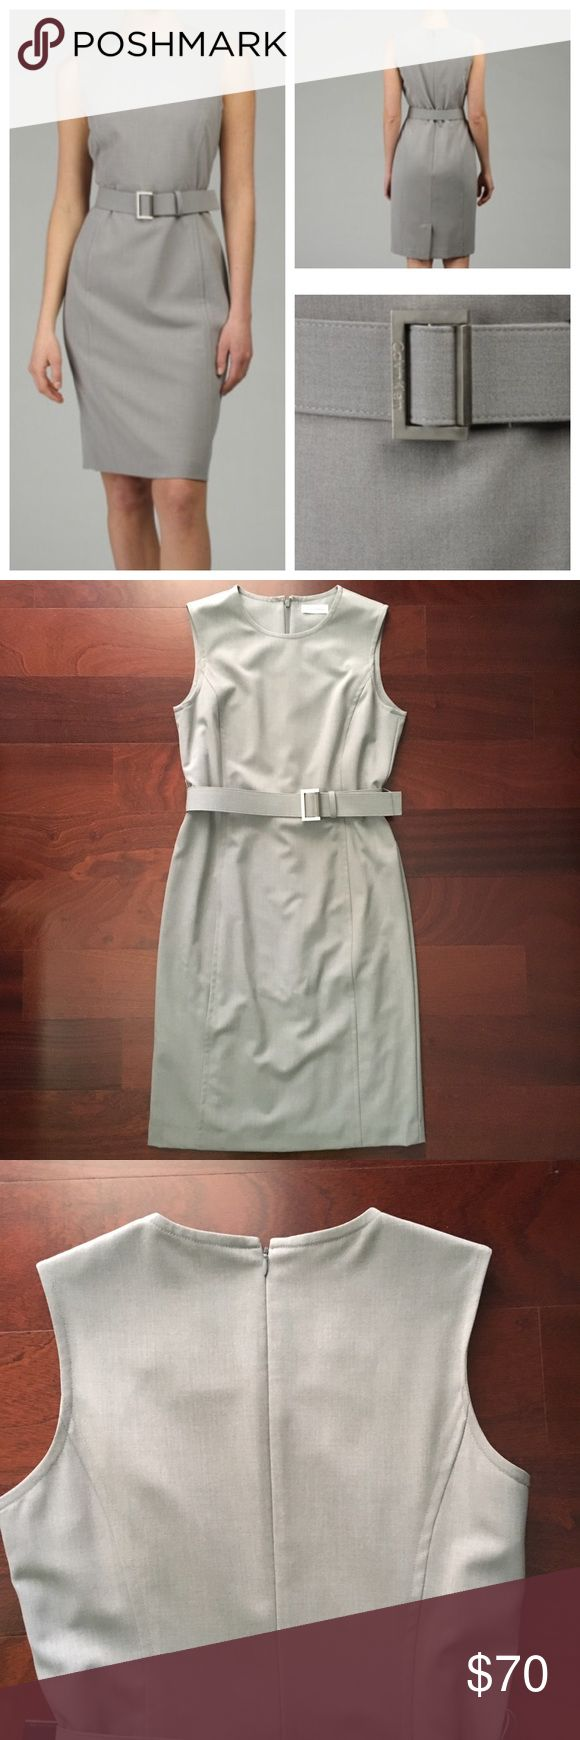   Calvin Klein   Sheath Dress Calvin Klein Sleeveless Sheath Dress. Tin. Size 6.         Structured dress with attached branded belt. Rounded neck. Back zippered entry. Front darting. Box pleat on back. Lined. First picture to show fit and style. Calvin Klein Dresses